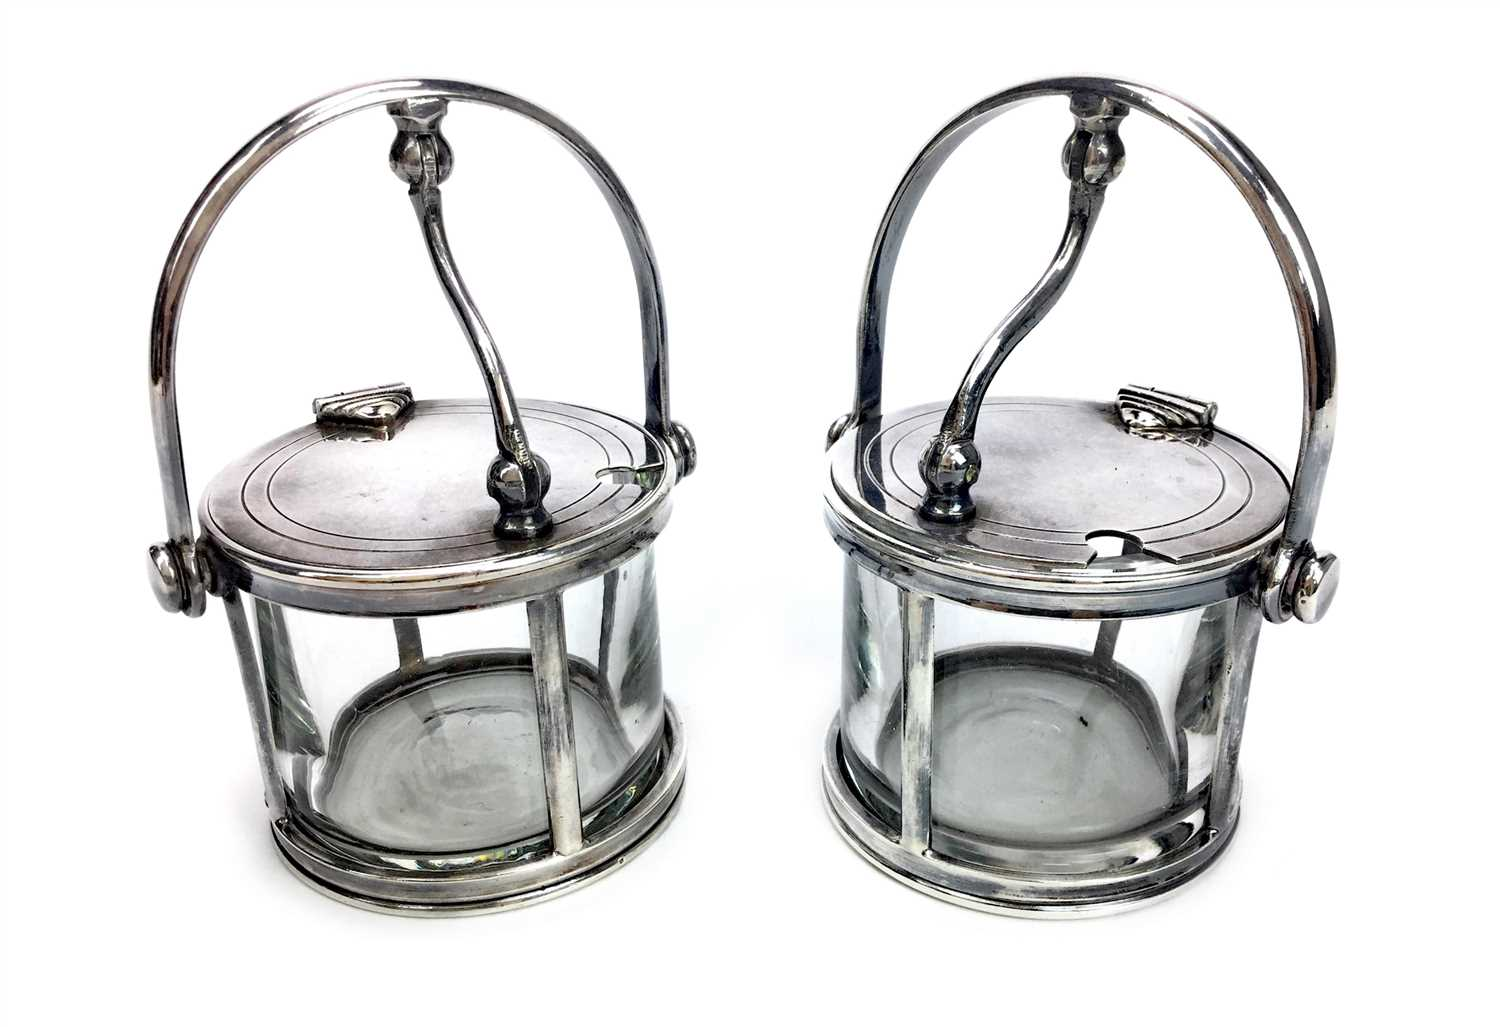 Lot 804-A PAIR OF GLASS MUSTARD POTS WITH MOUNTS BY FELIX FRERES